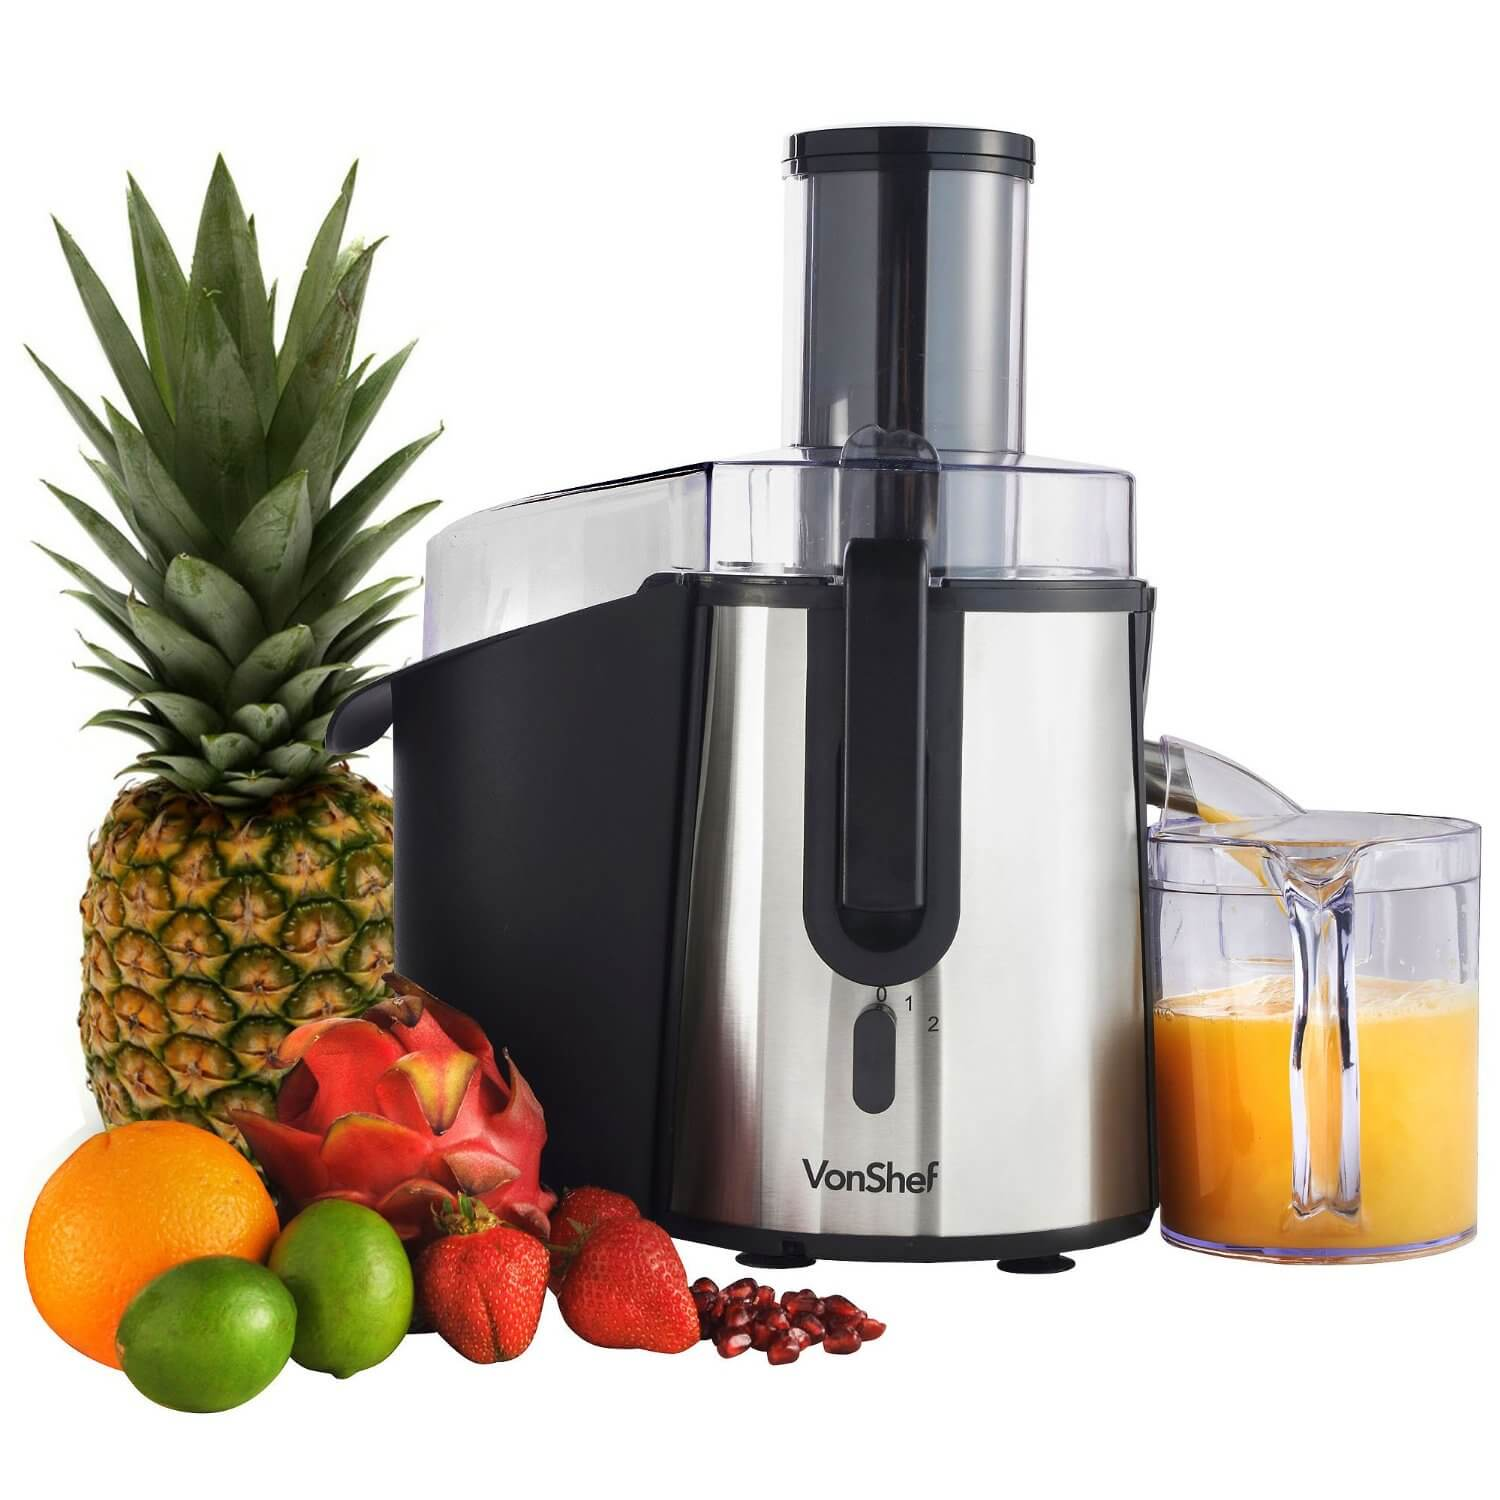 Best blender review uk dating 8